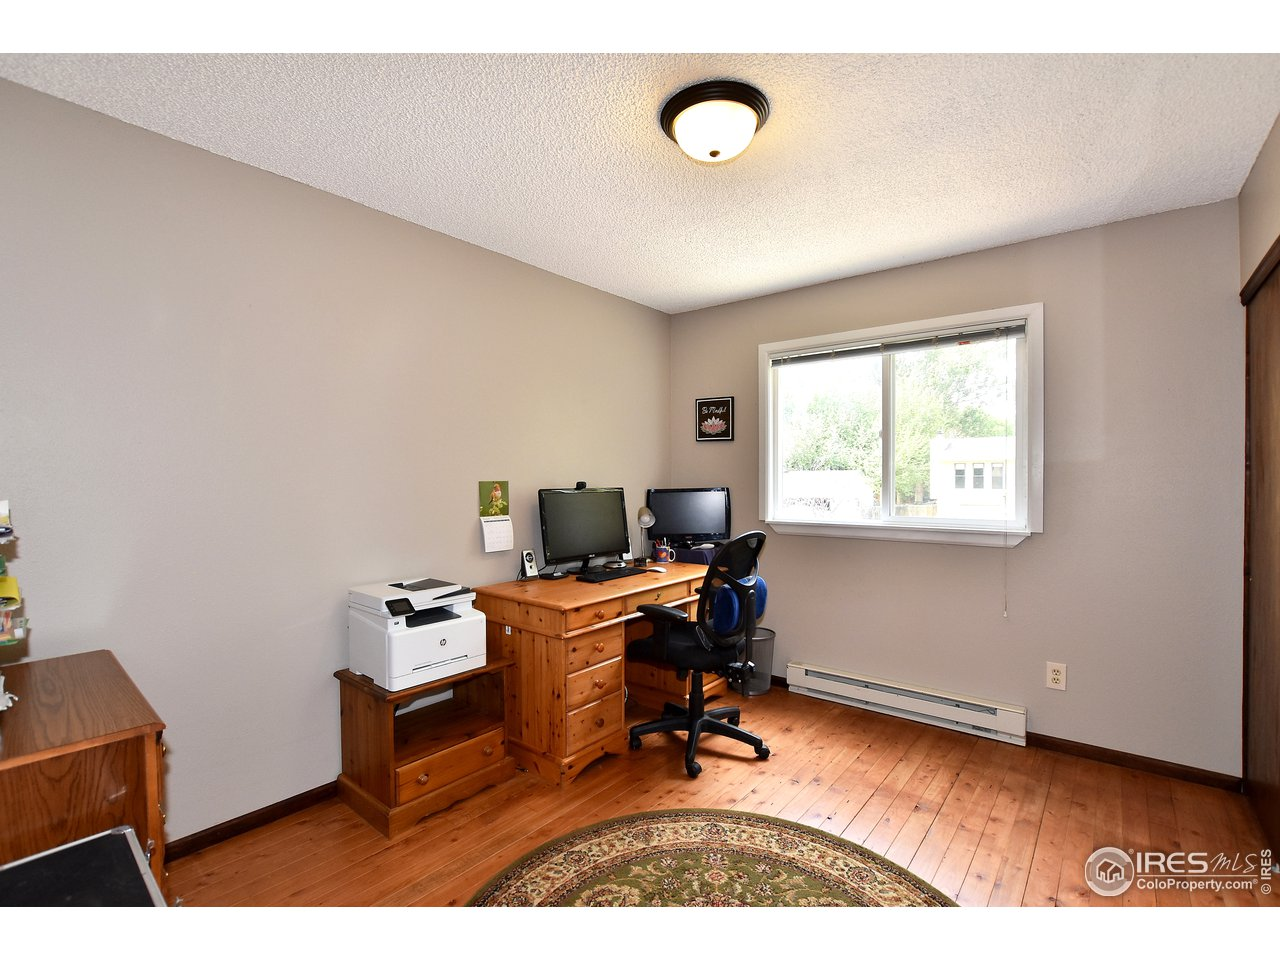 3rd bedroom used as an office